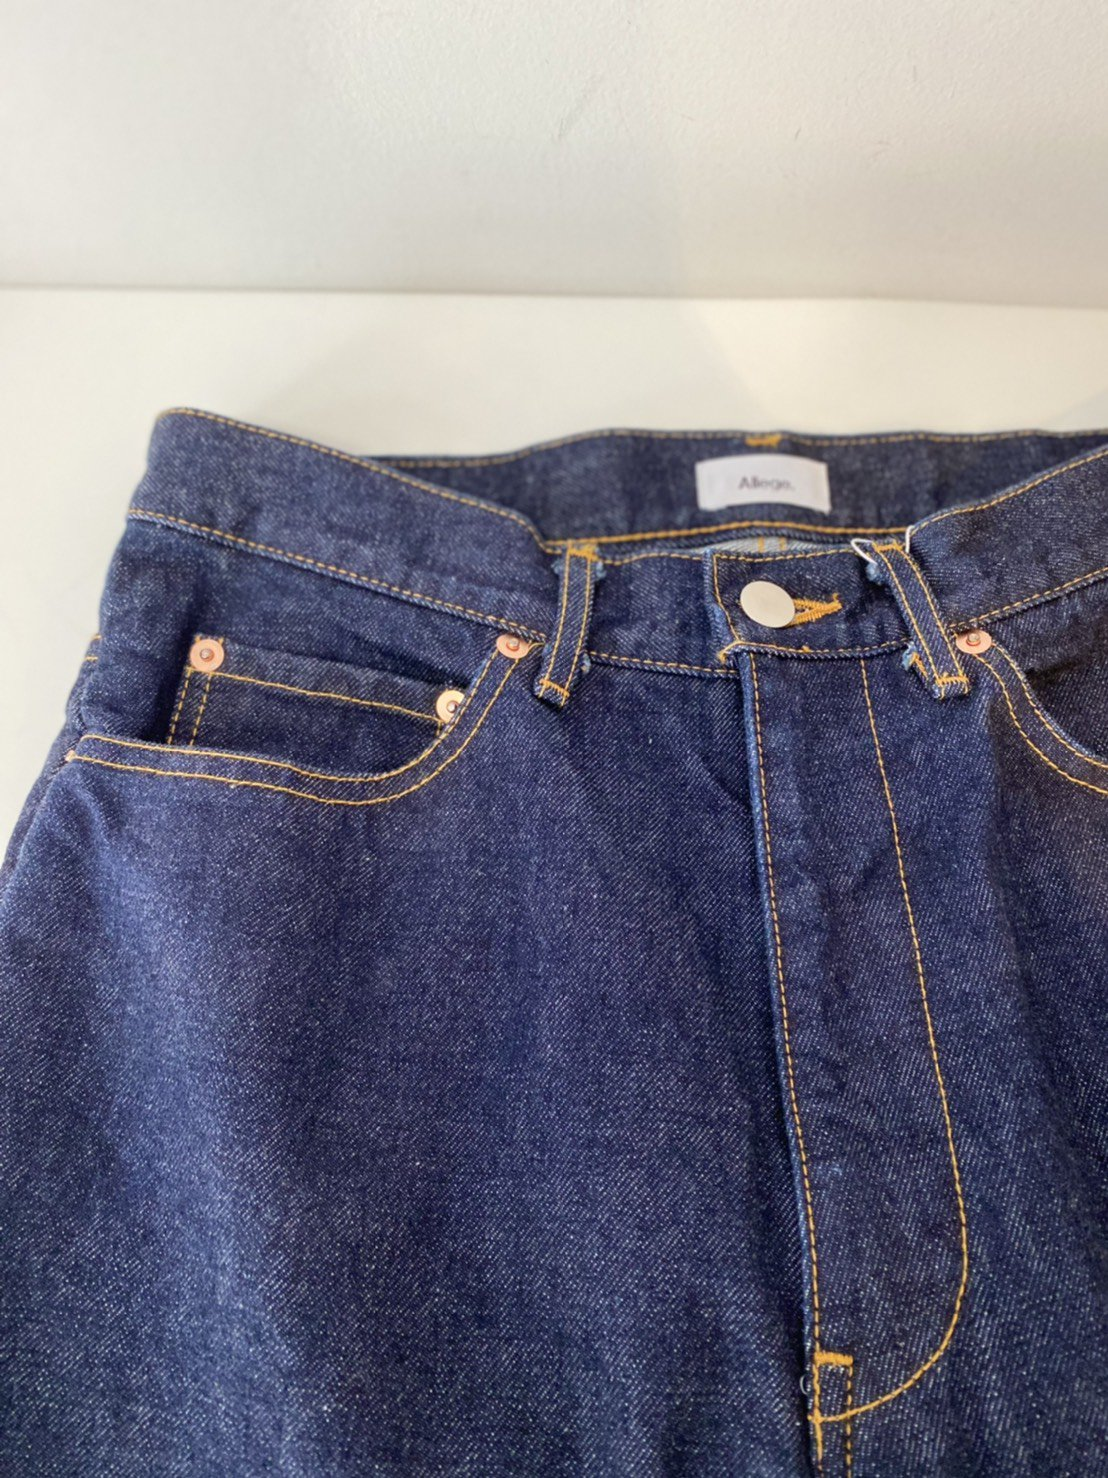 ALLEGE<br />Semi Flare One Wash Denim PT / BLUE<img class='new_mark_img2' src='https://img.shop-pro.jp/img/new/icons14.gif' style='border:none;display:inline;margin:0px;padding:0px;width:auto;' />